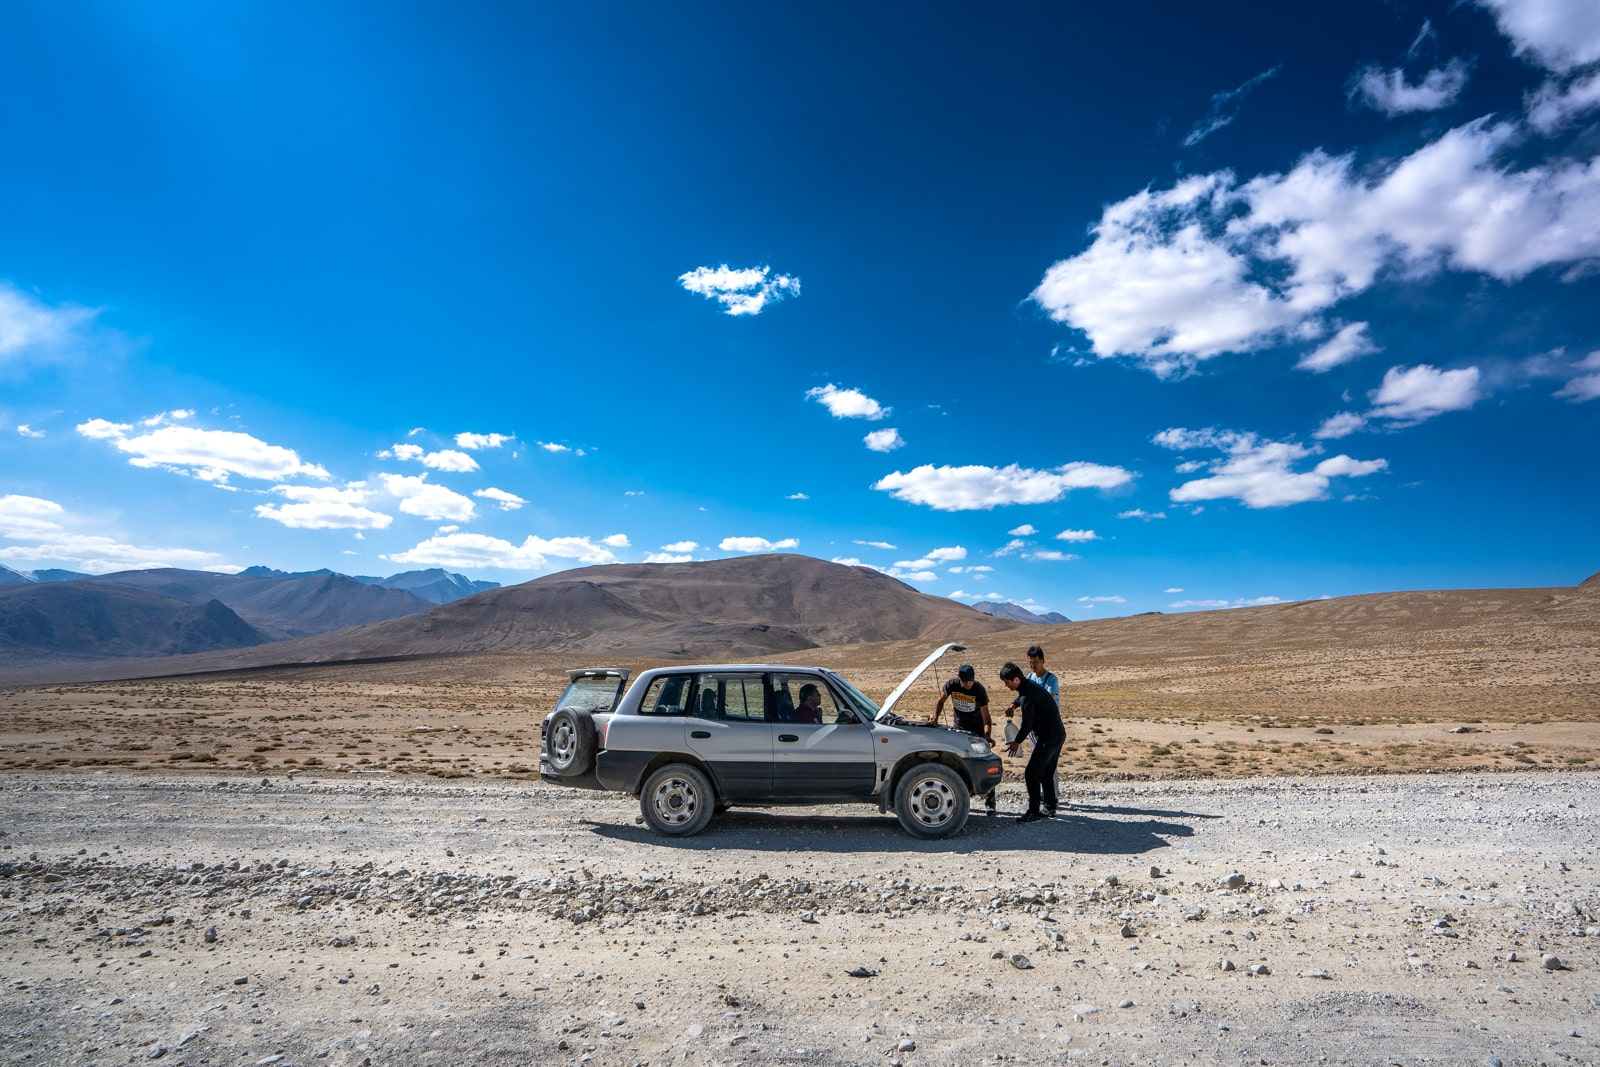 Shared taxi breaking down on Pamir Highway in Tajikistan